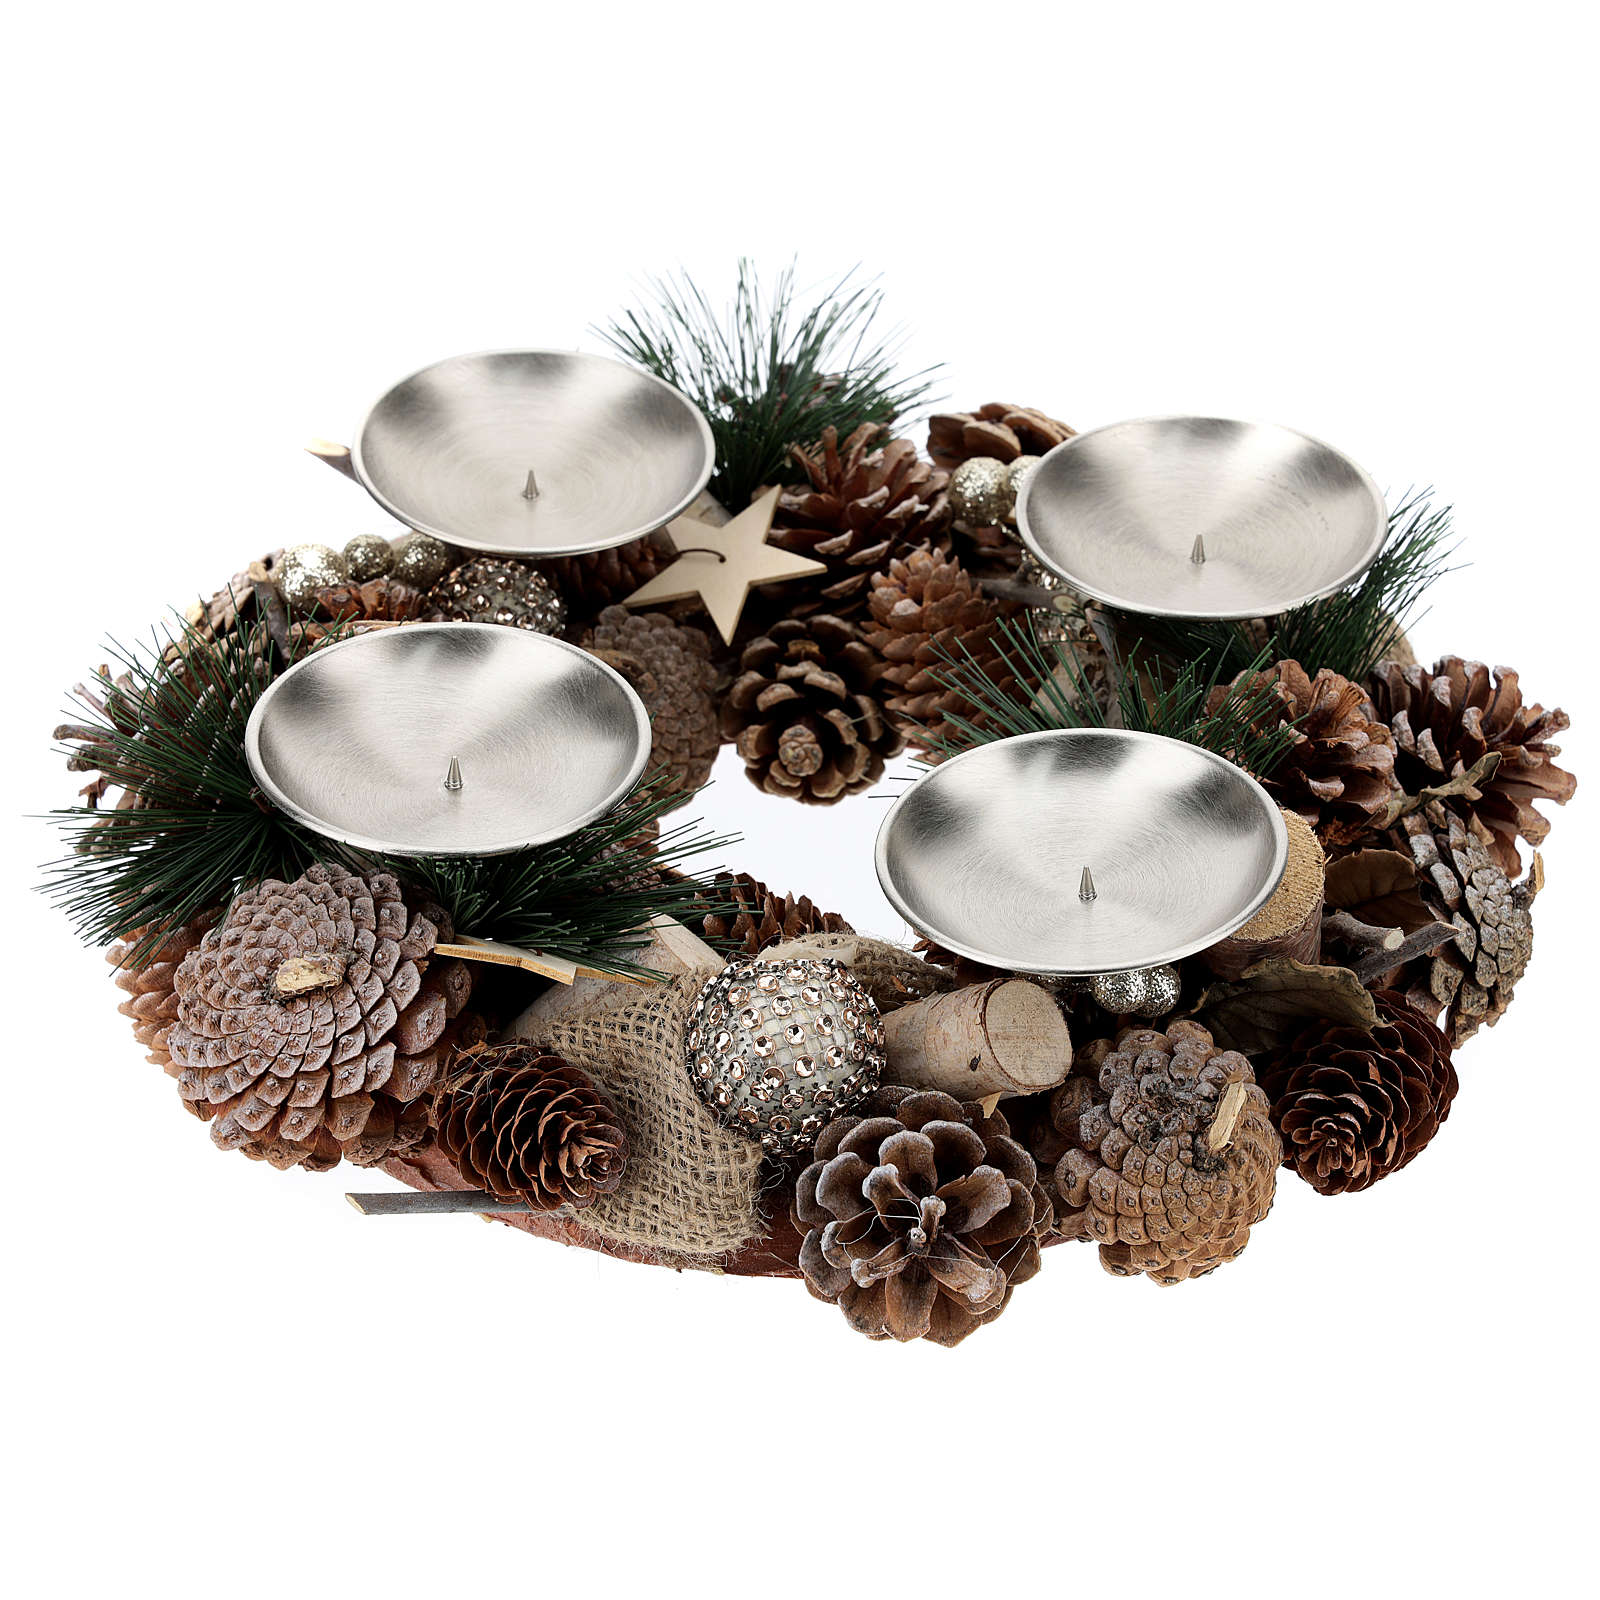 Advent kit wreath, pine cones, spikes, gold candles 3